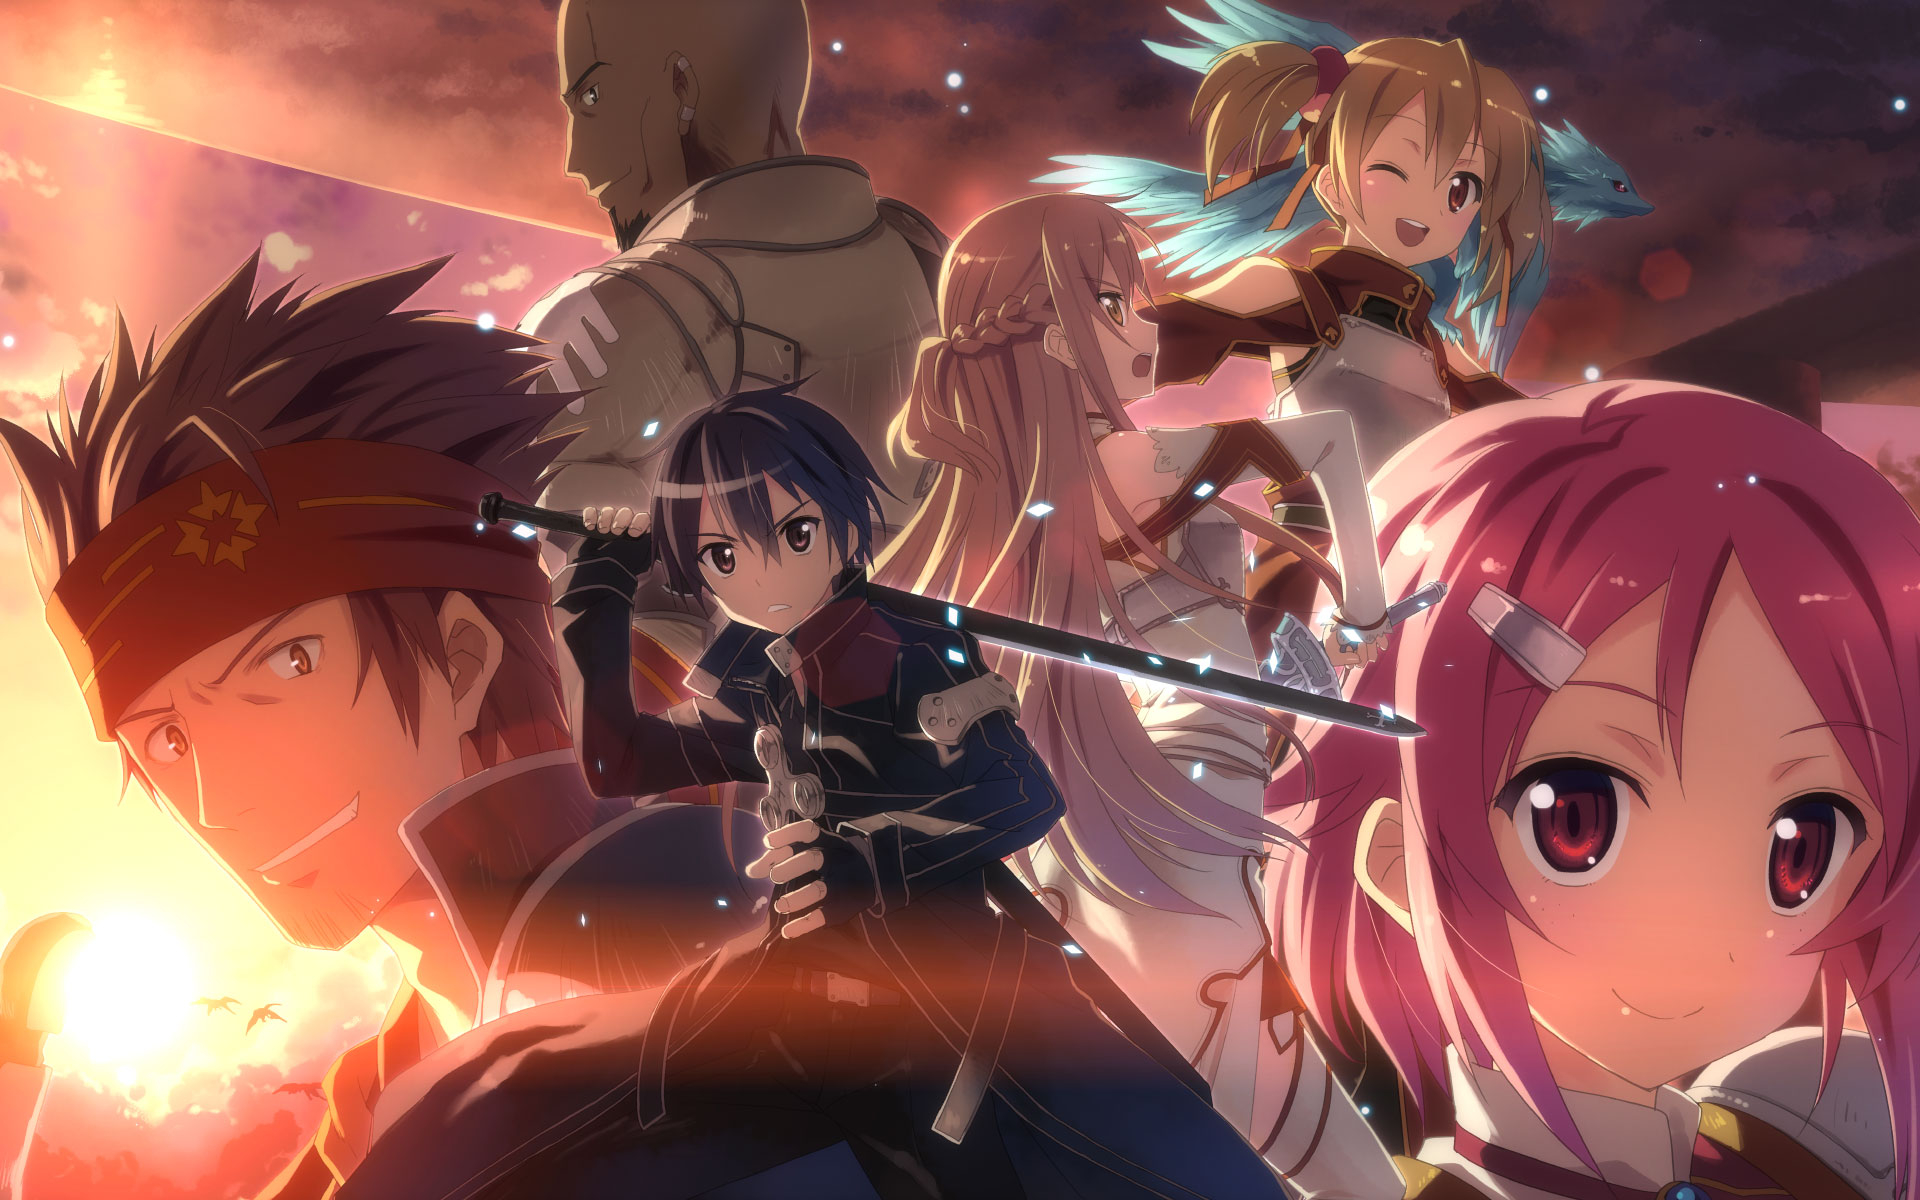 sao   Sword Art Online Wallpaper 31982400 1920x1200